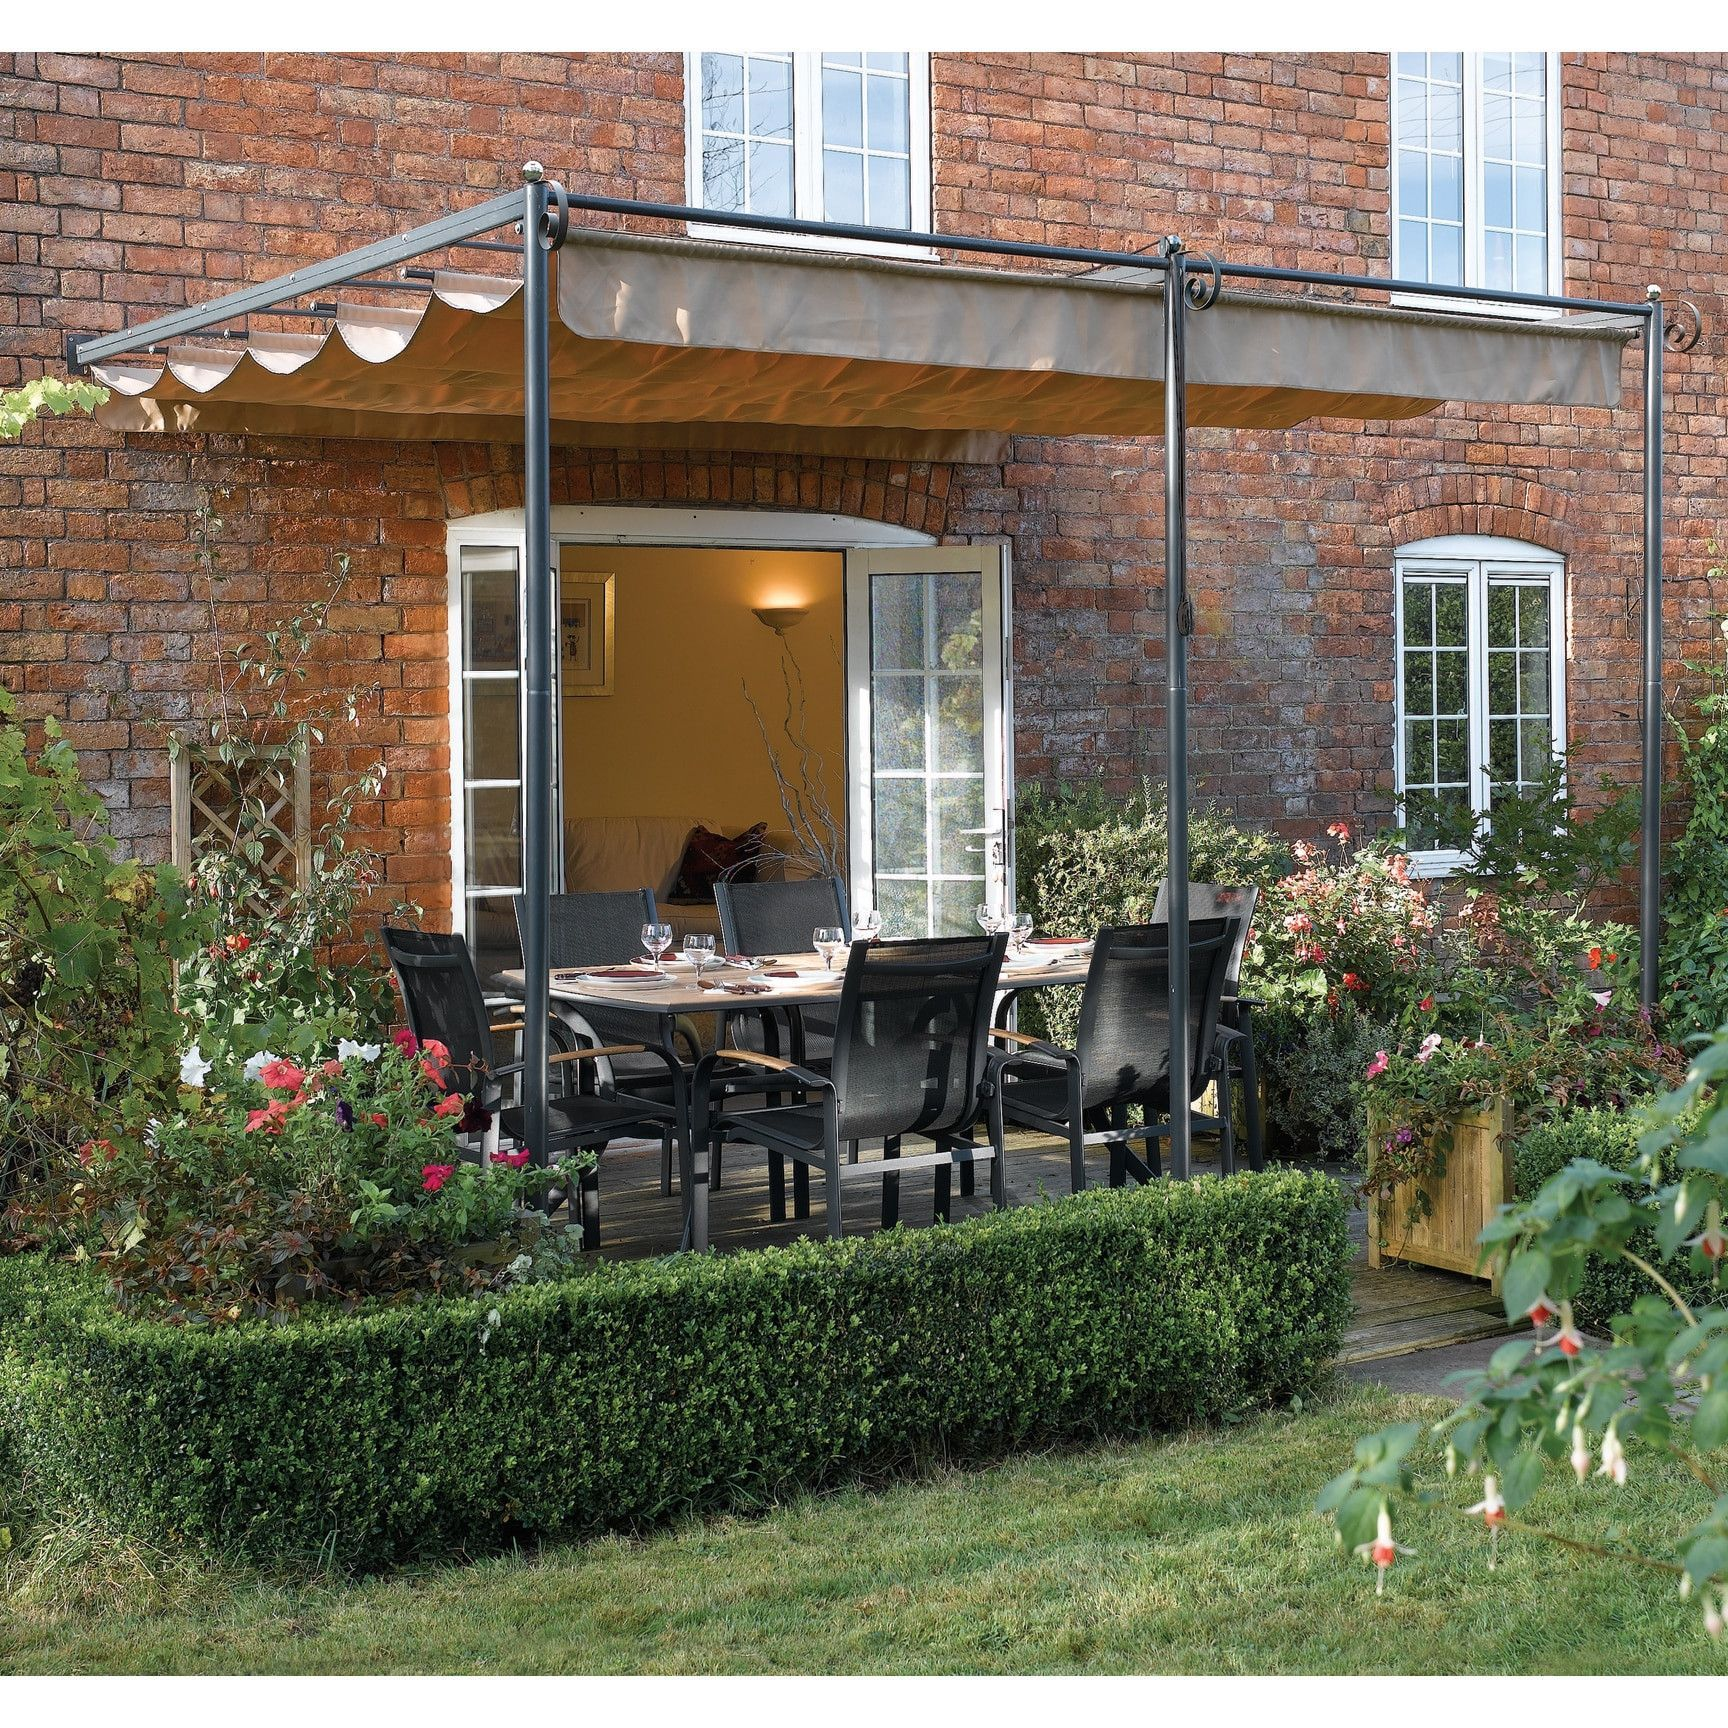 Garden Awnings for sale Patio awning canopies for house. : garden awnings and canopies - memphite.com